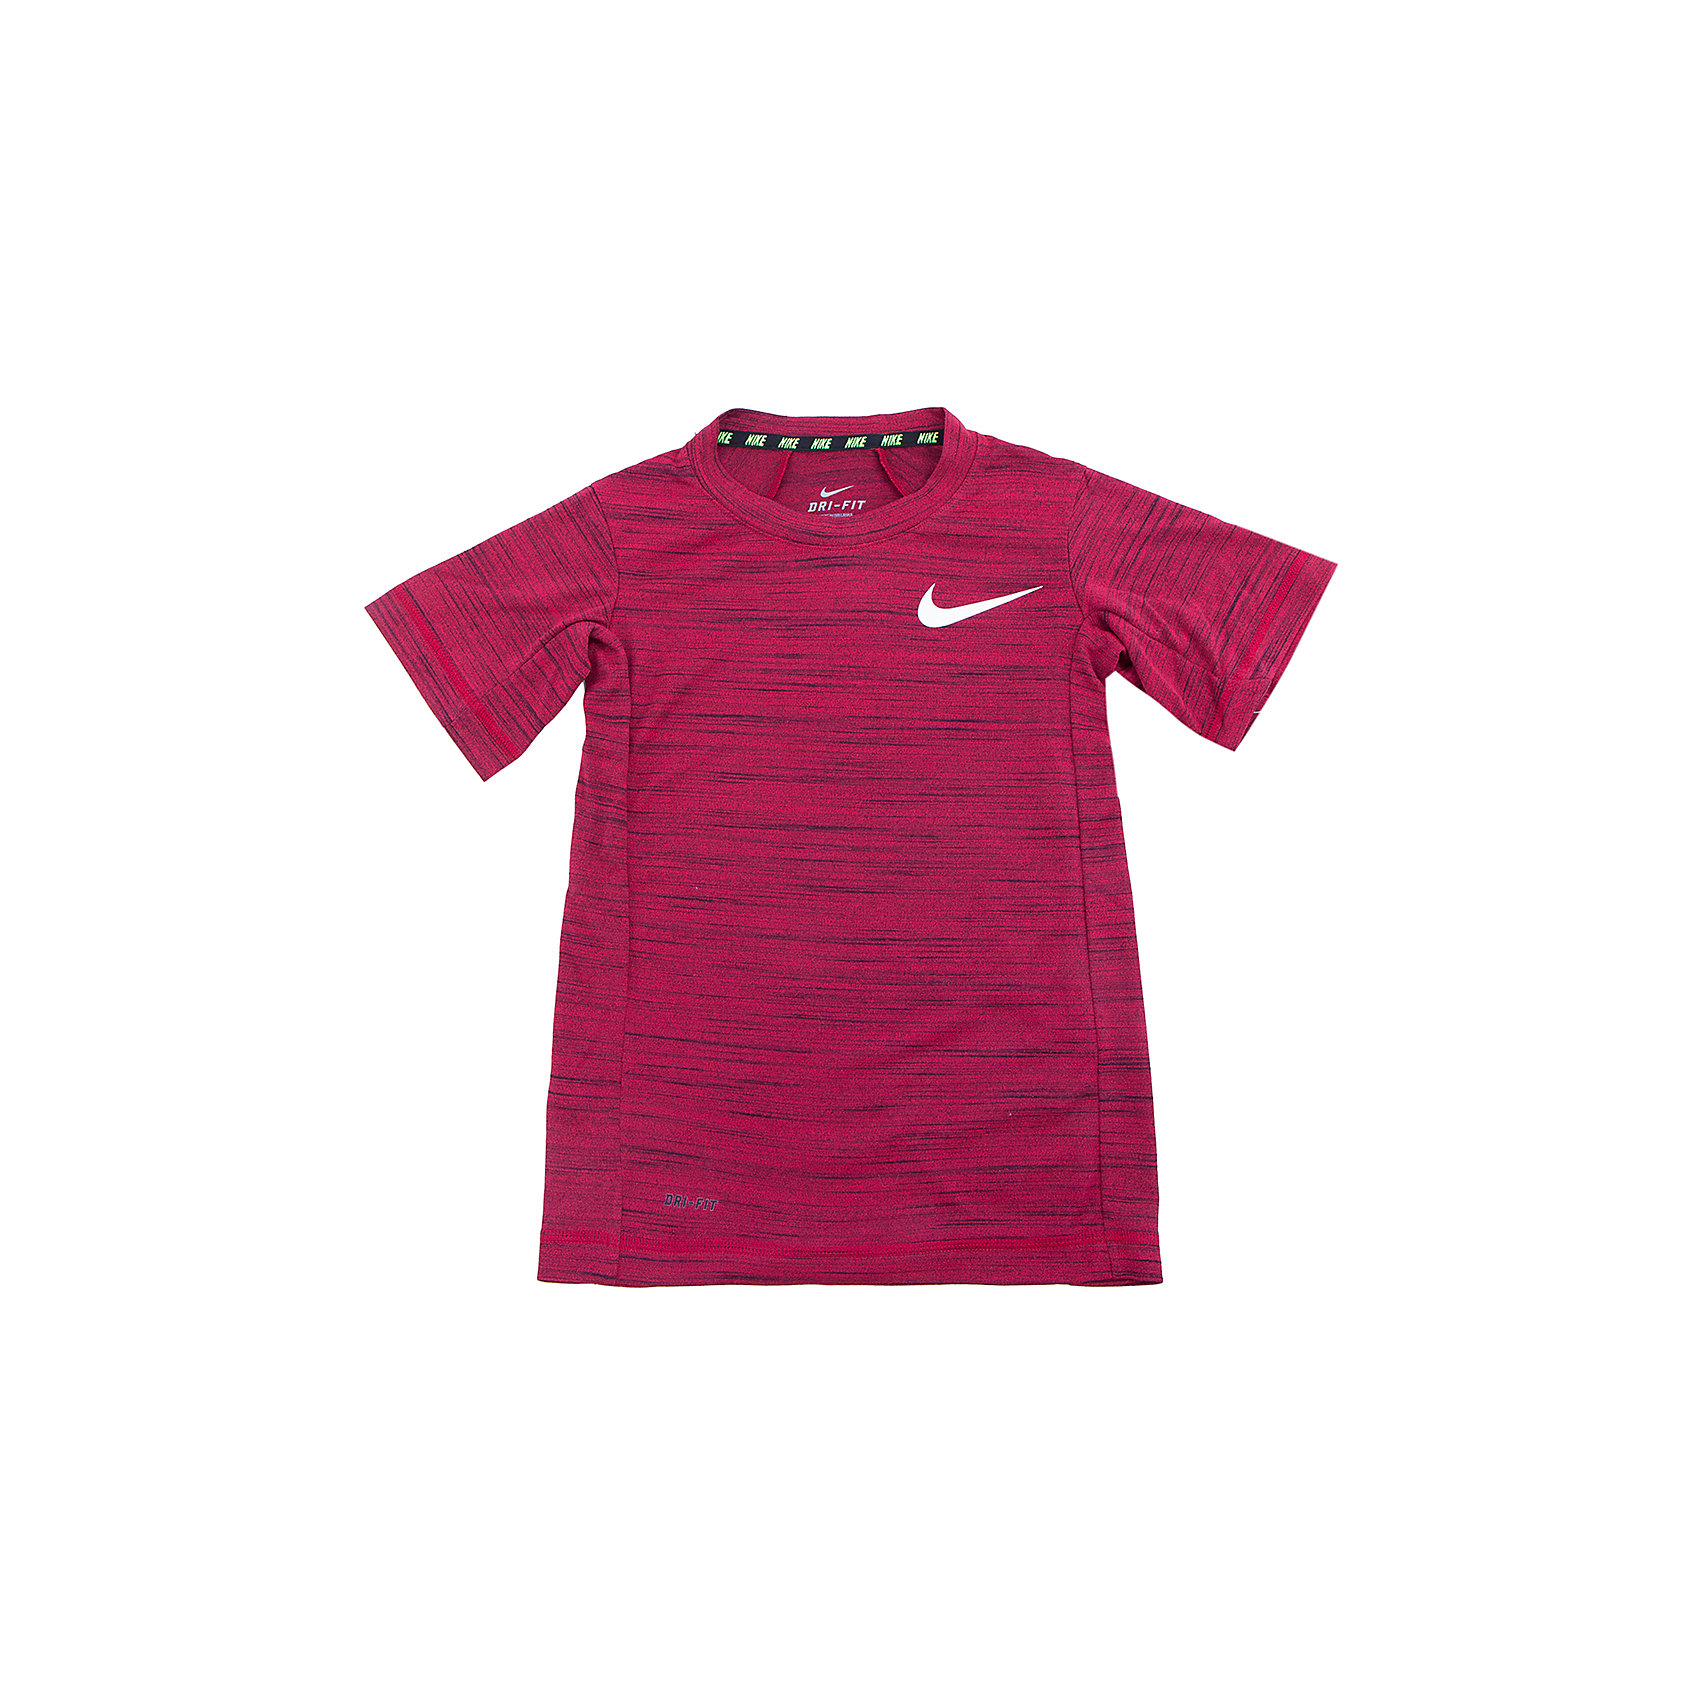 nike ni464ewhbh36 NIKE Футболка для мальчика NIKE DF COOL SS TOP YTH NIKE